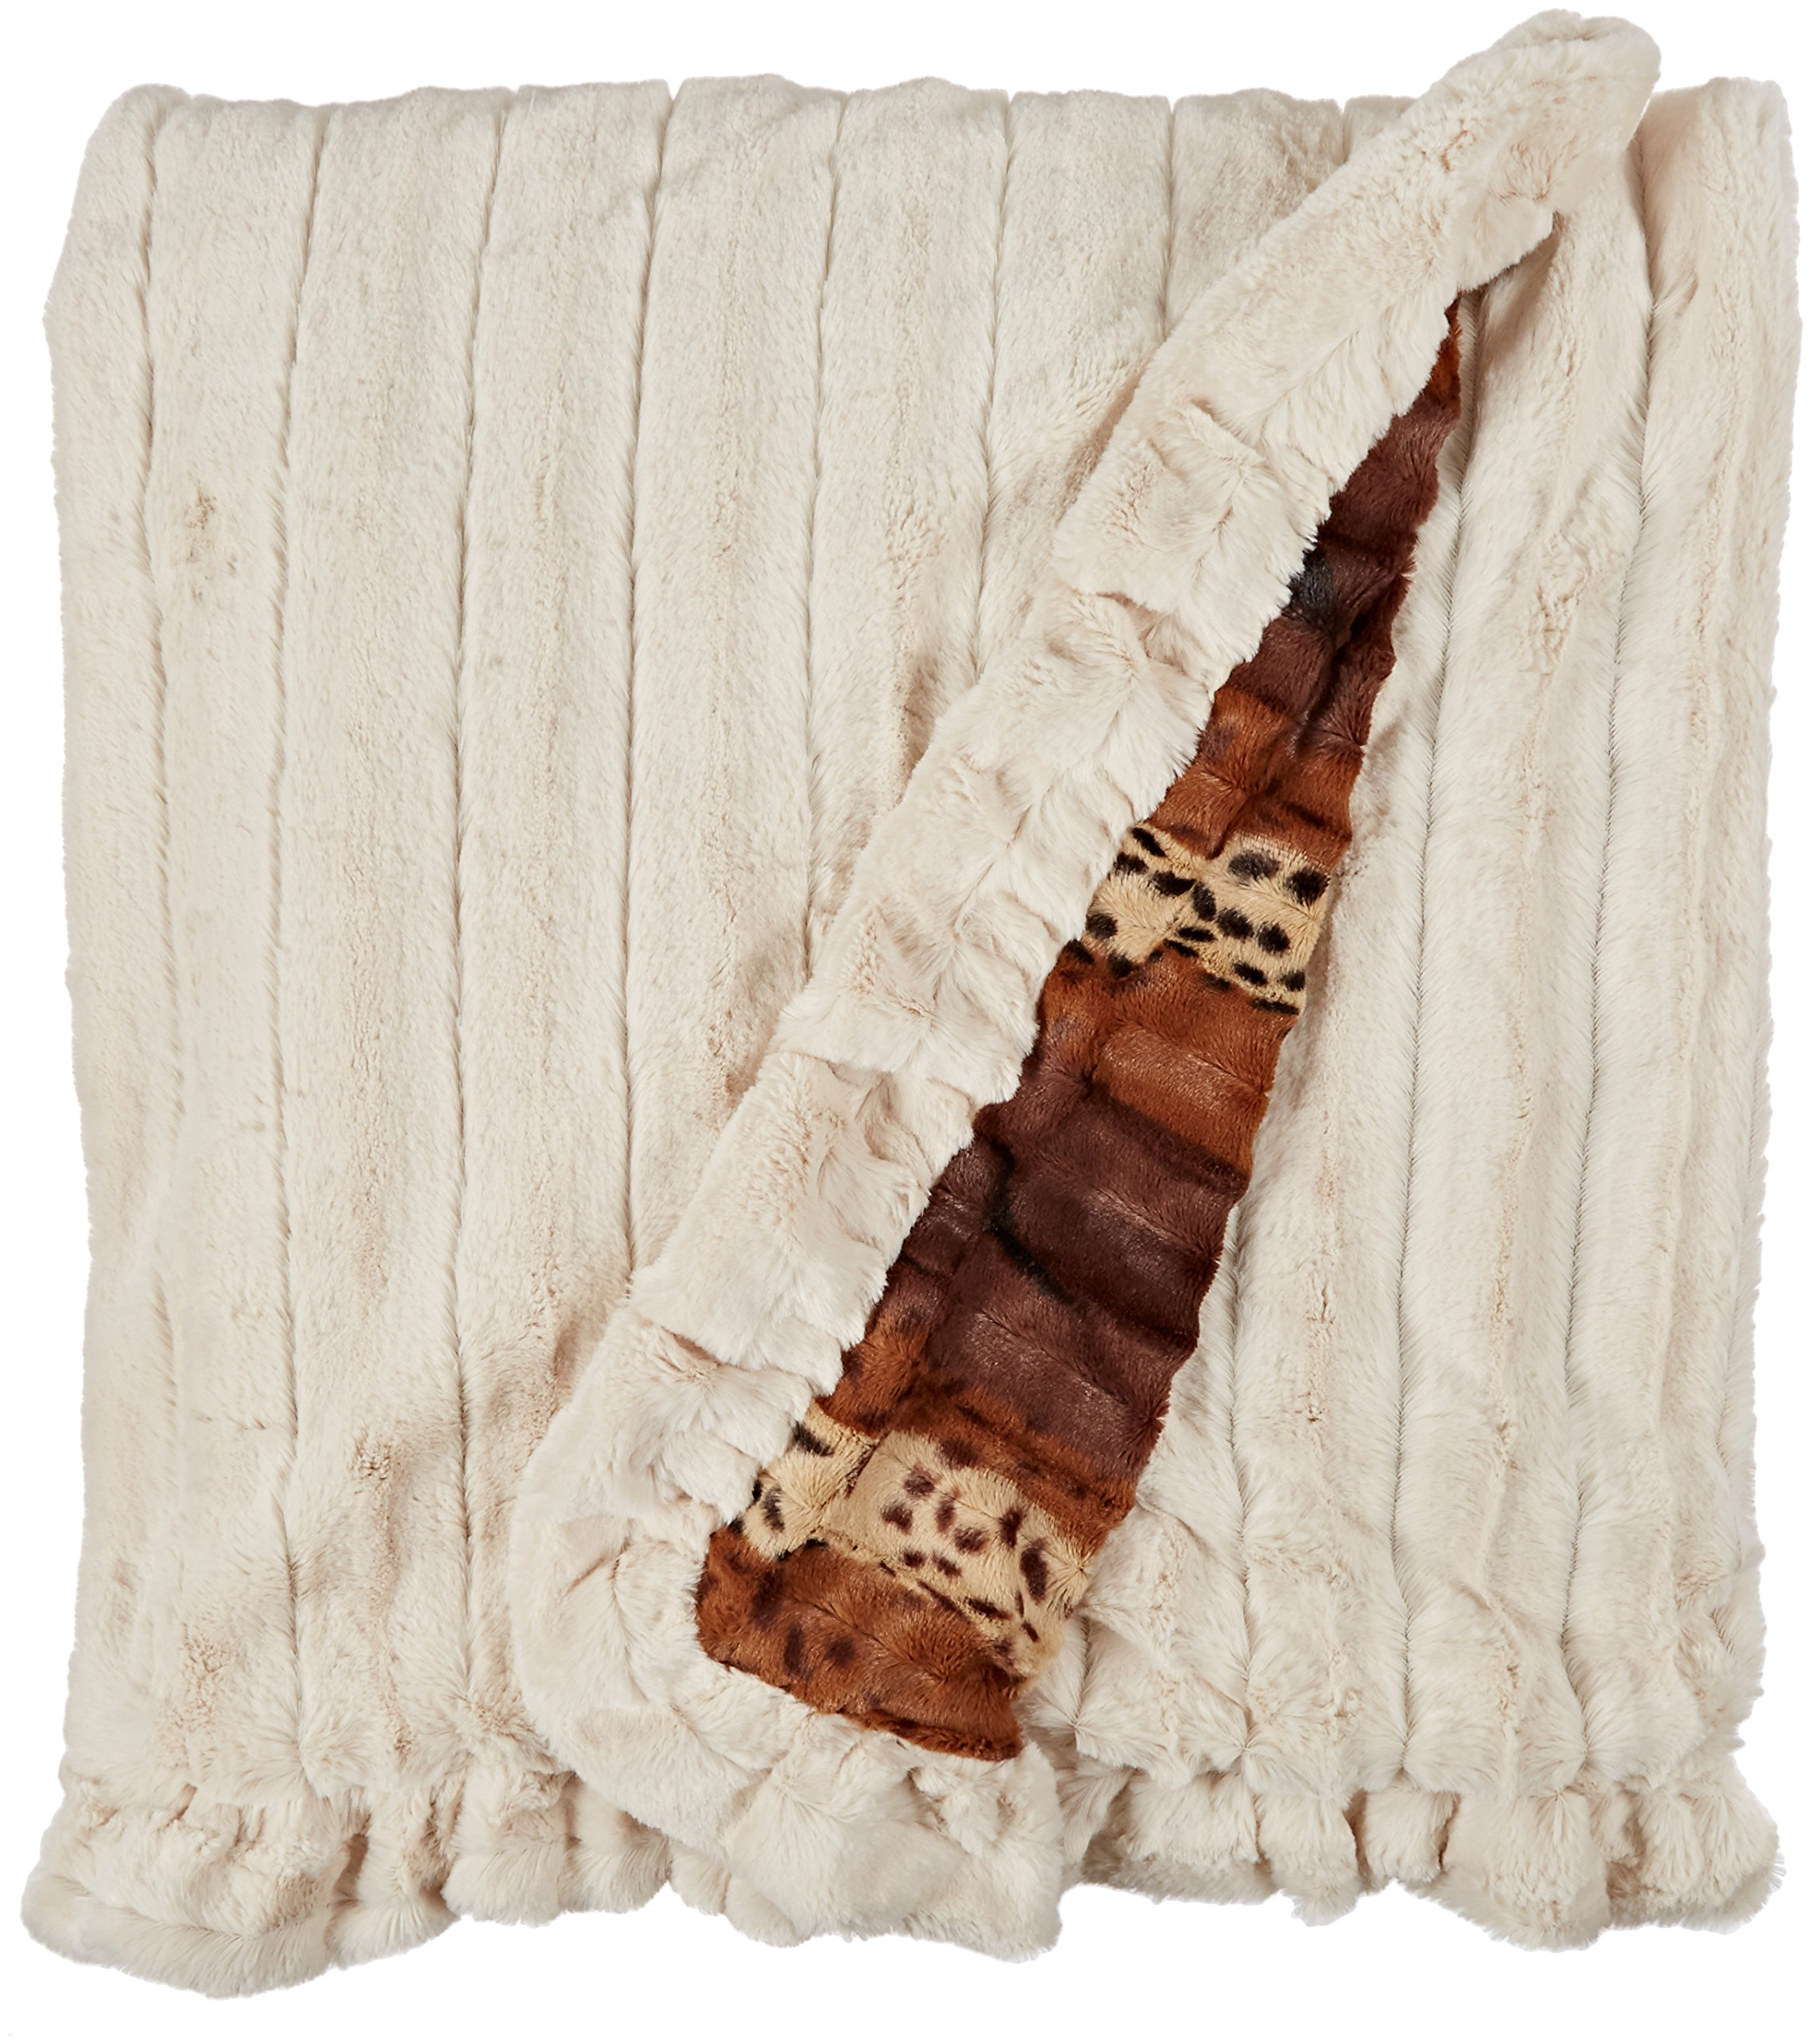 BESSIE AND BARNIE Pet Blanket, X-Large, Wild Kingdom/Natural Beauty with Ruffle